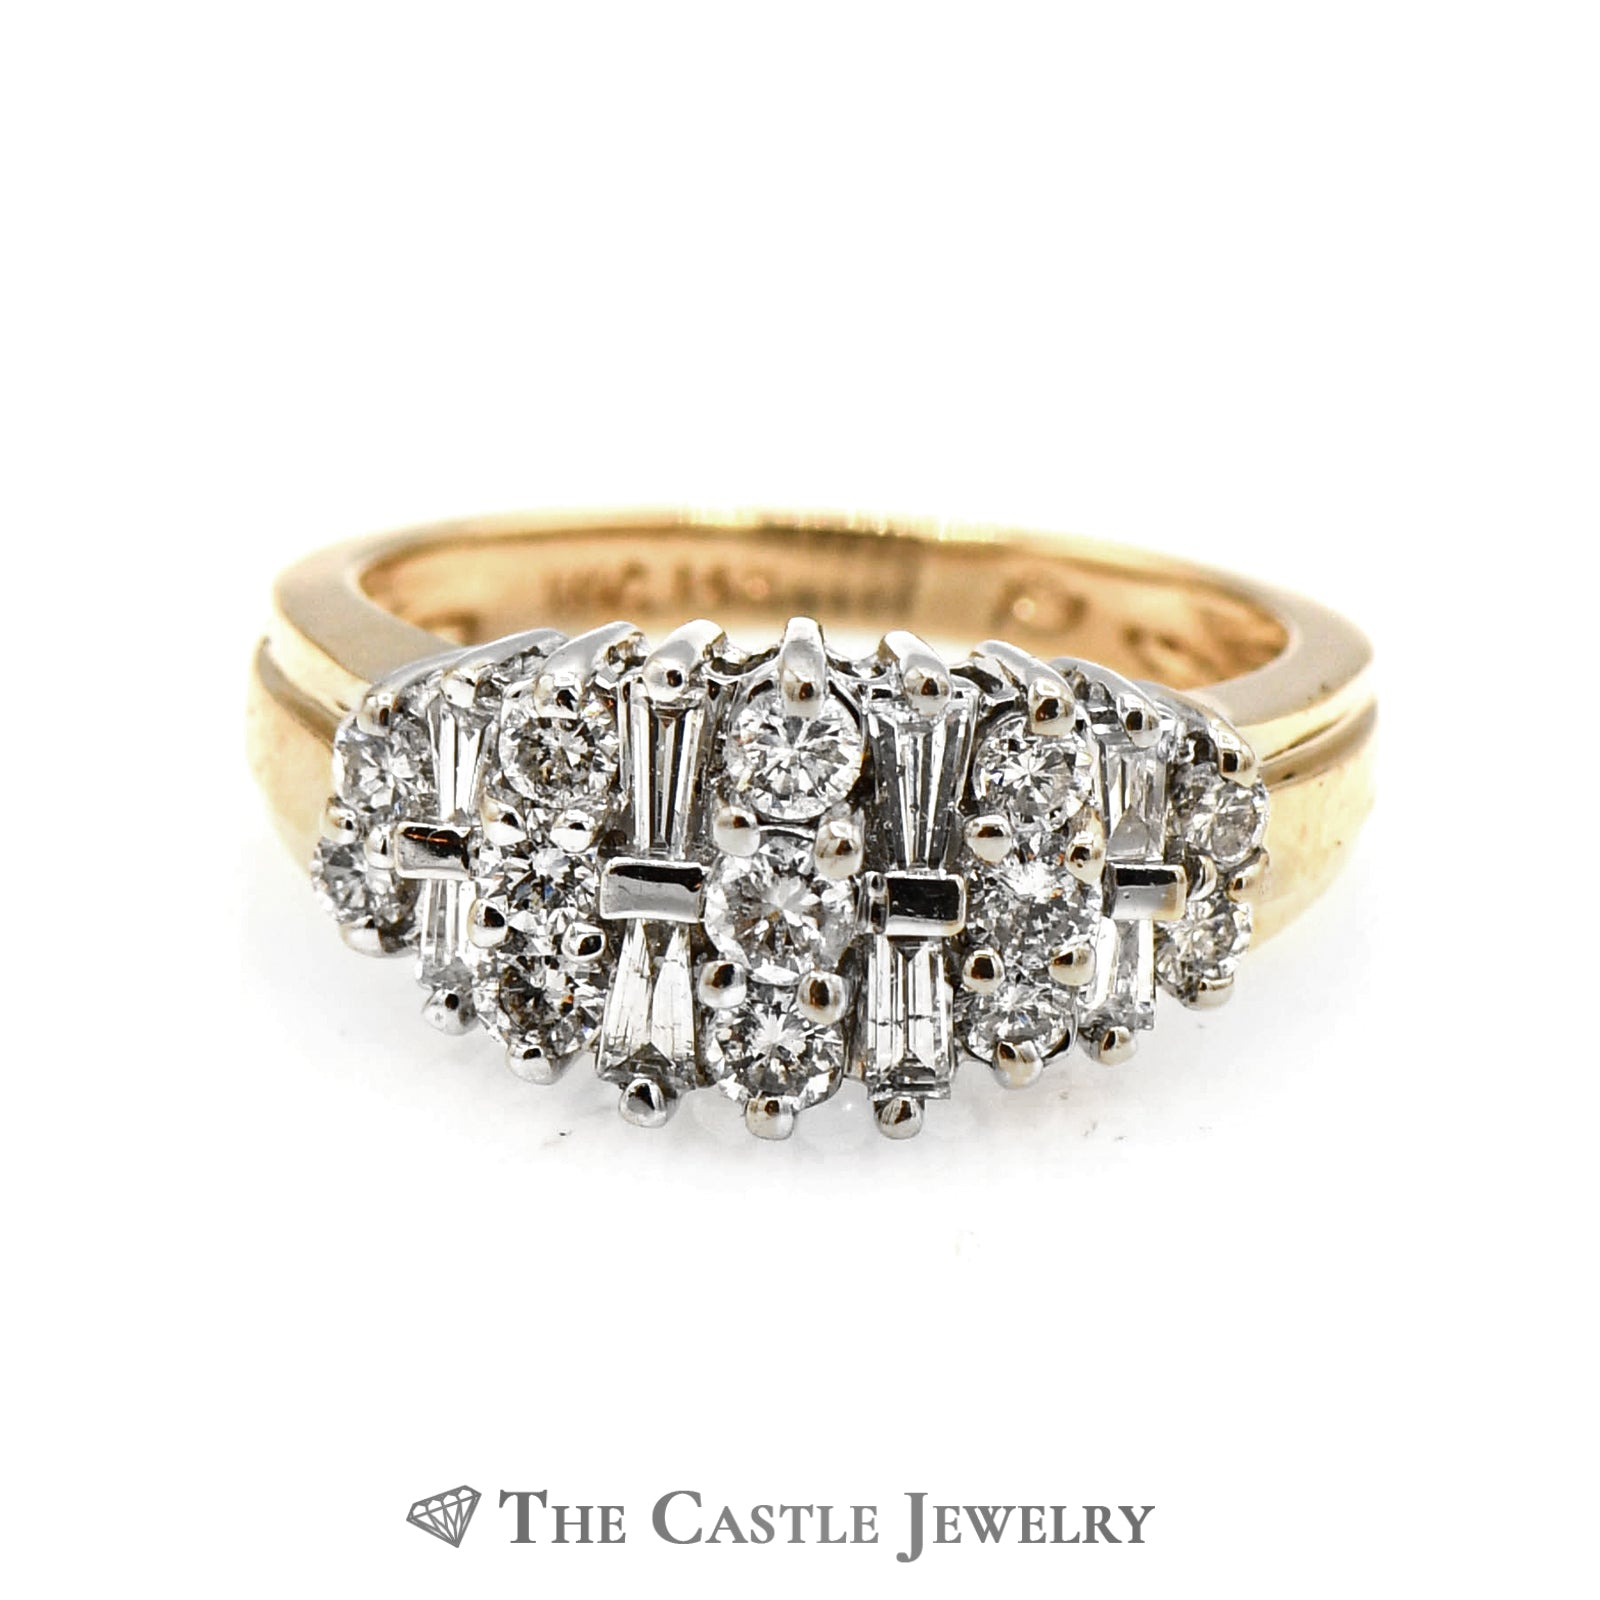 1cttw Round and Baguette Diamond Cluster Ring in 14k Yellow Gold